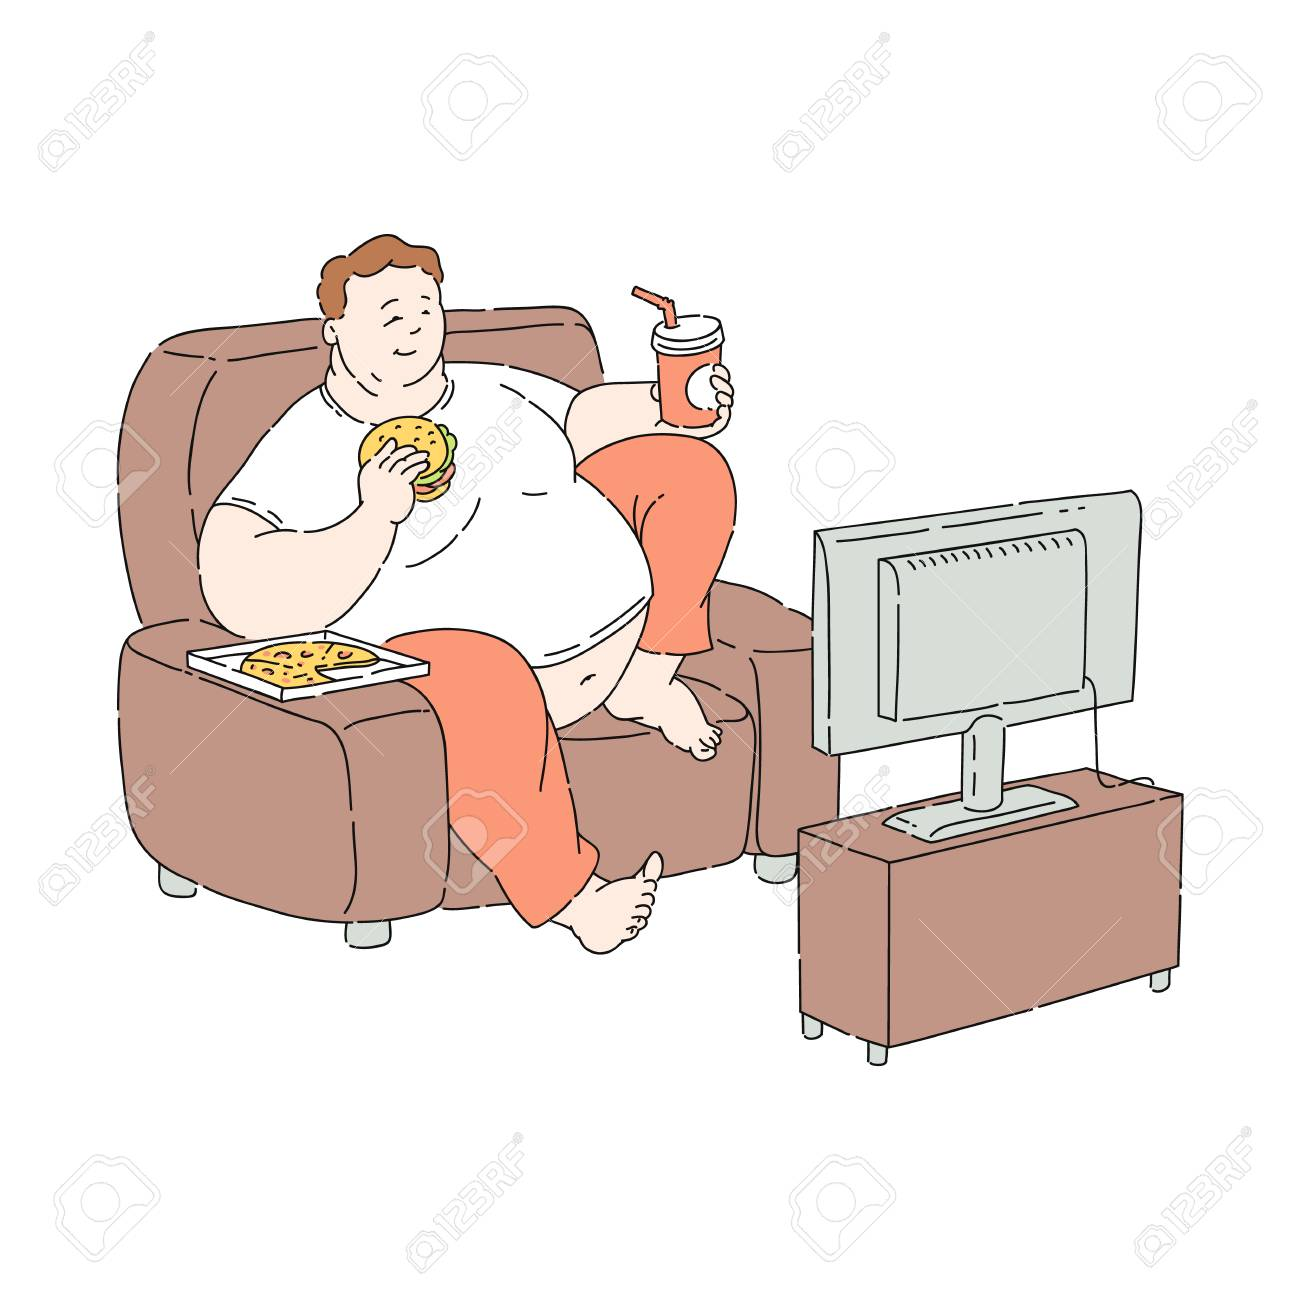 Vector overweight obese unhappy man sitting at sofa watching TV eating fastfood. Fat male character with obesity. Excessive weight man. Health problems connected with unhealthy food and diet - 125412008